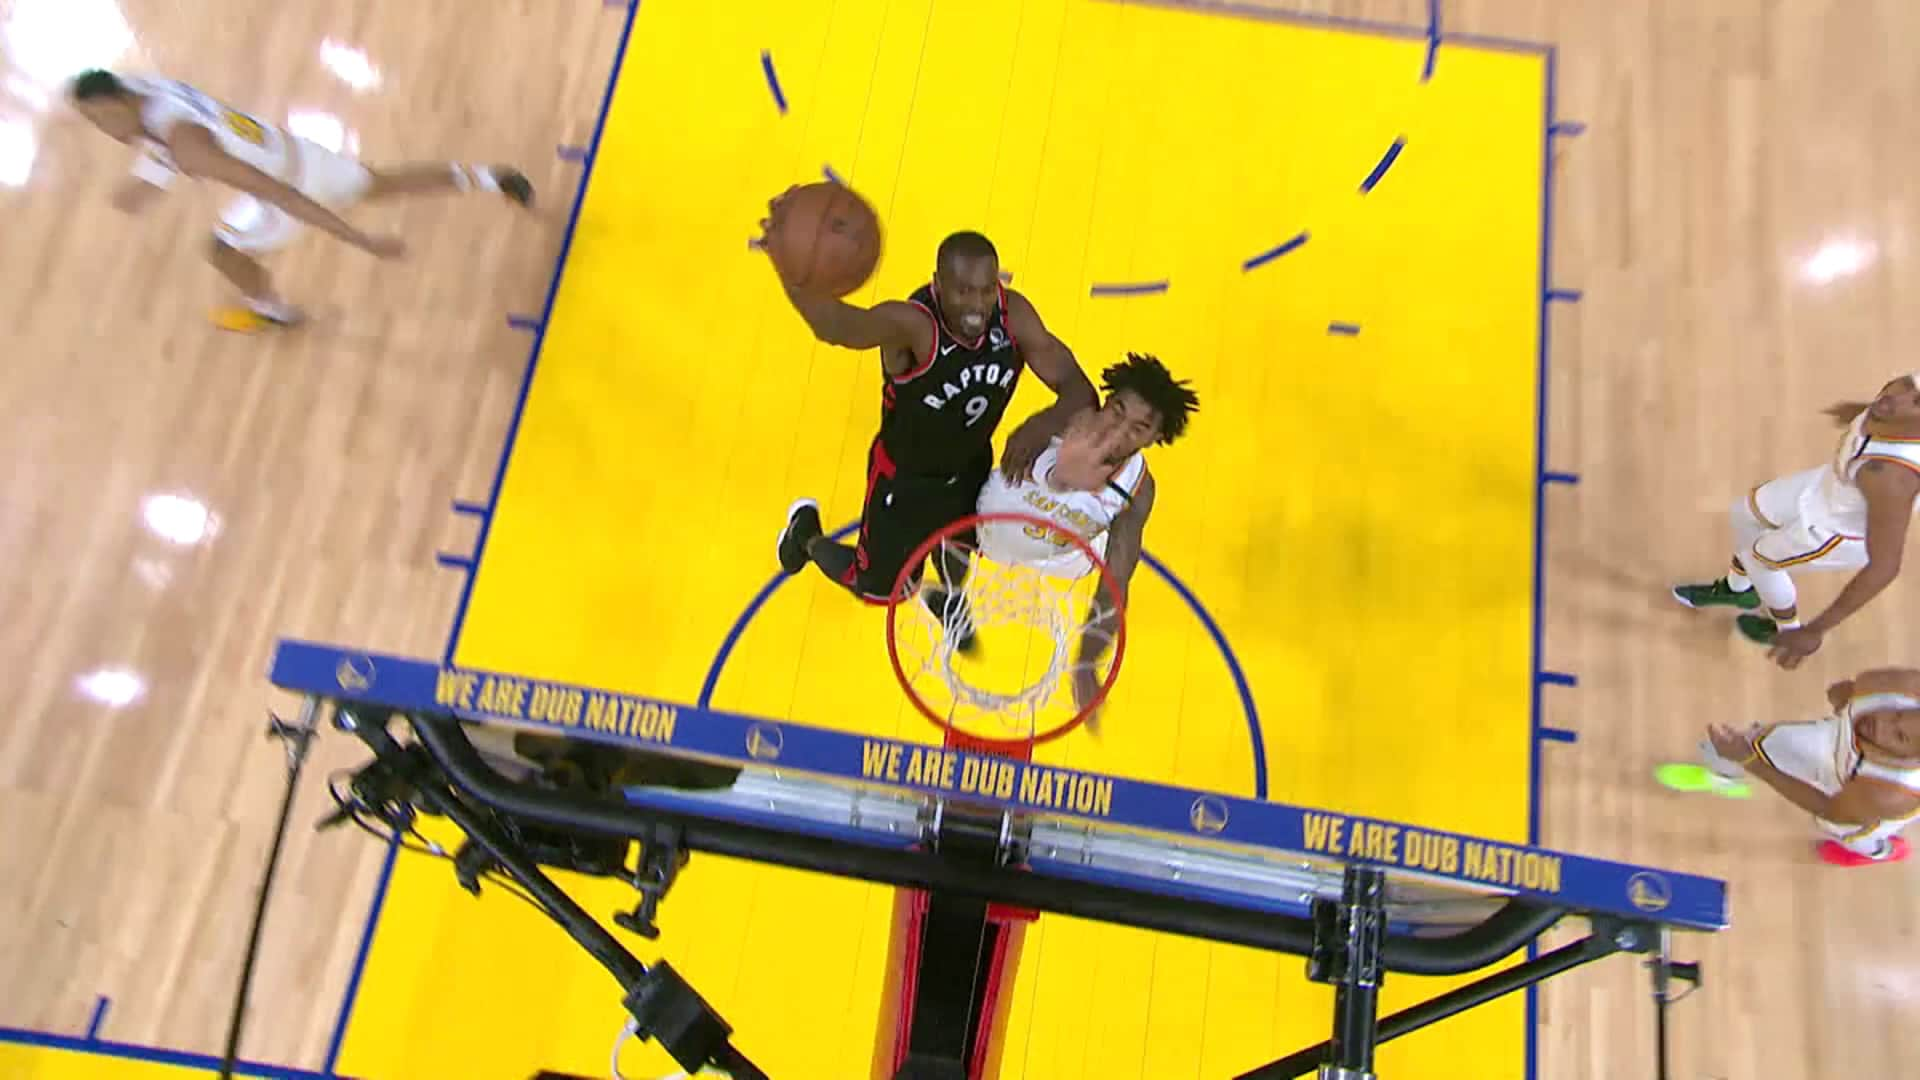 Raptors Highlights: Ibaka Dunk - March 5, 2020